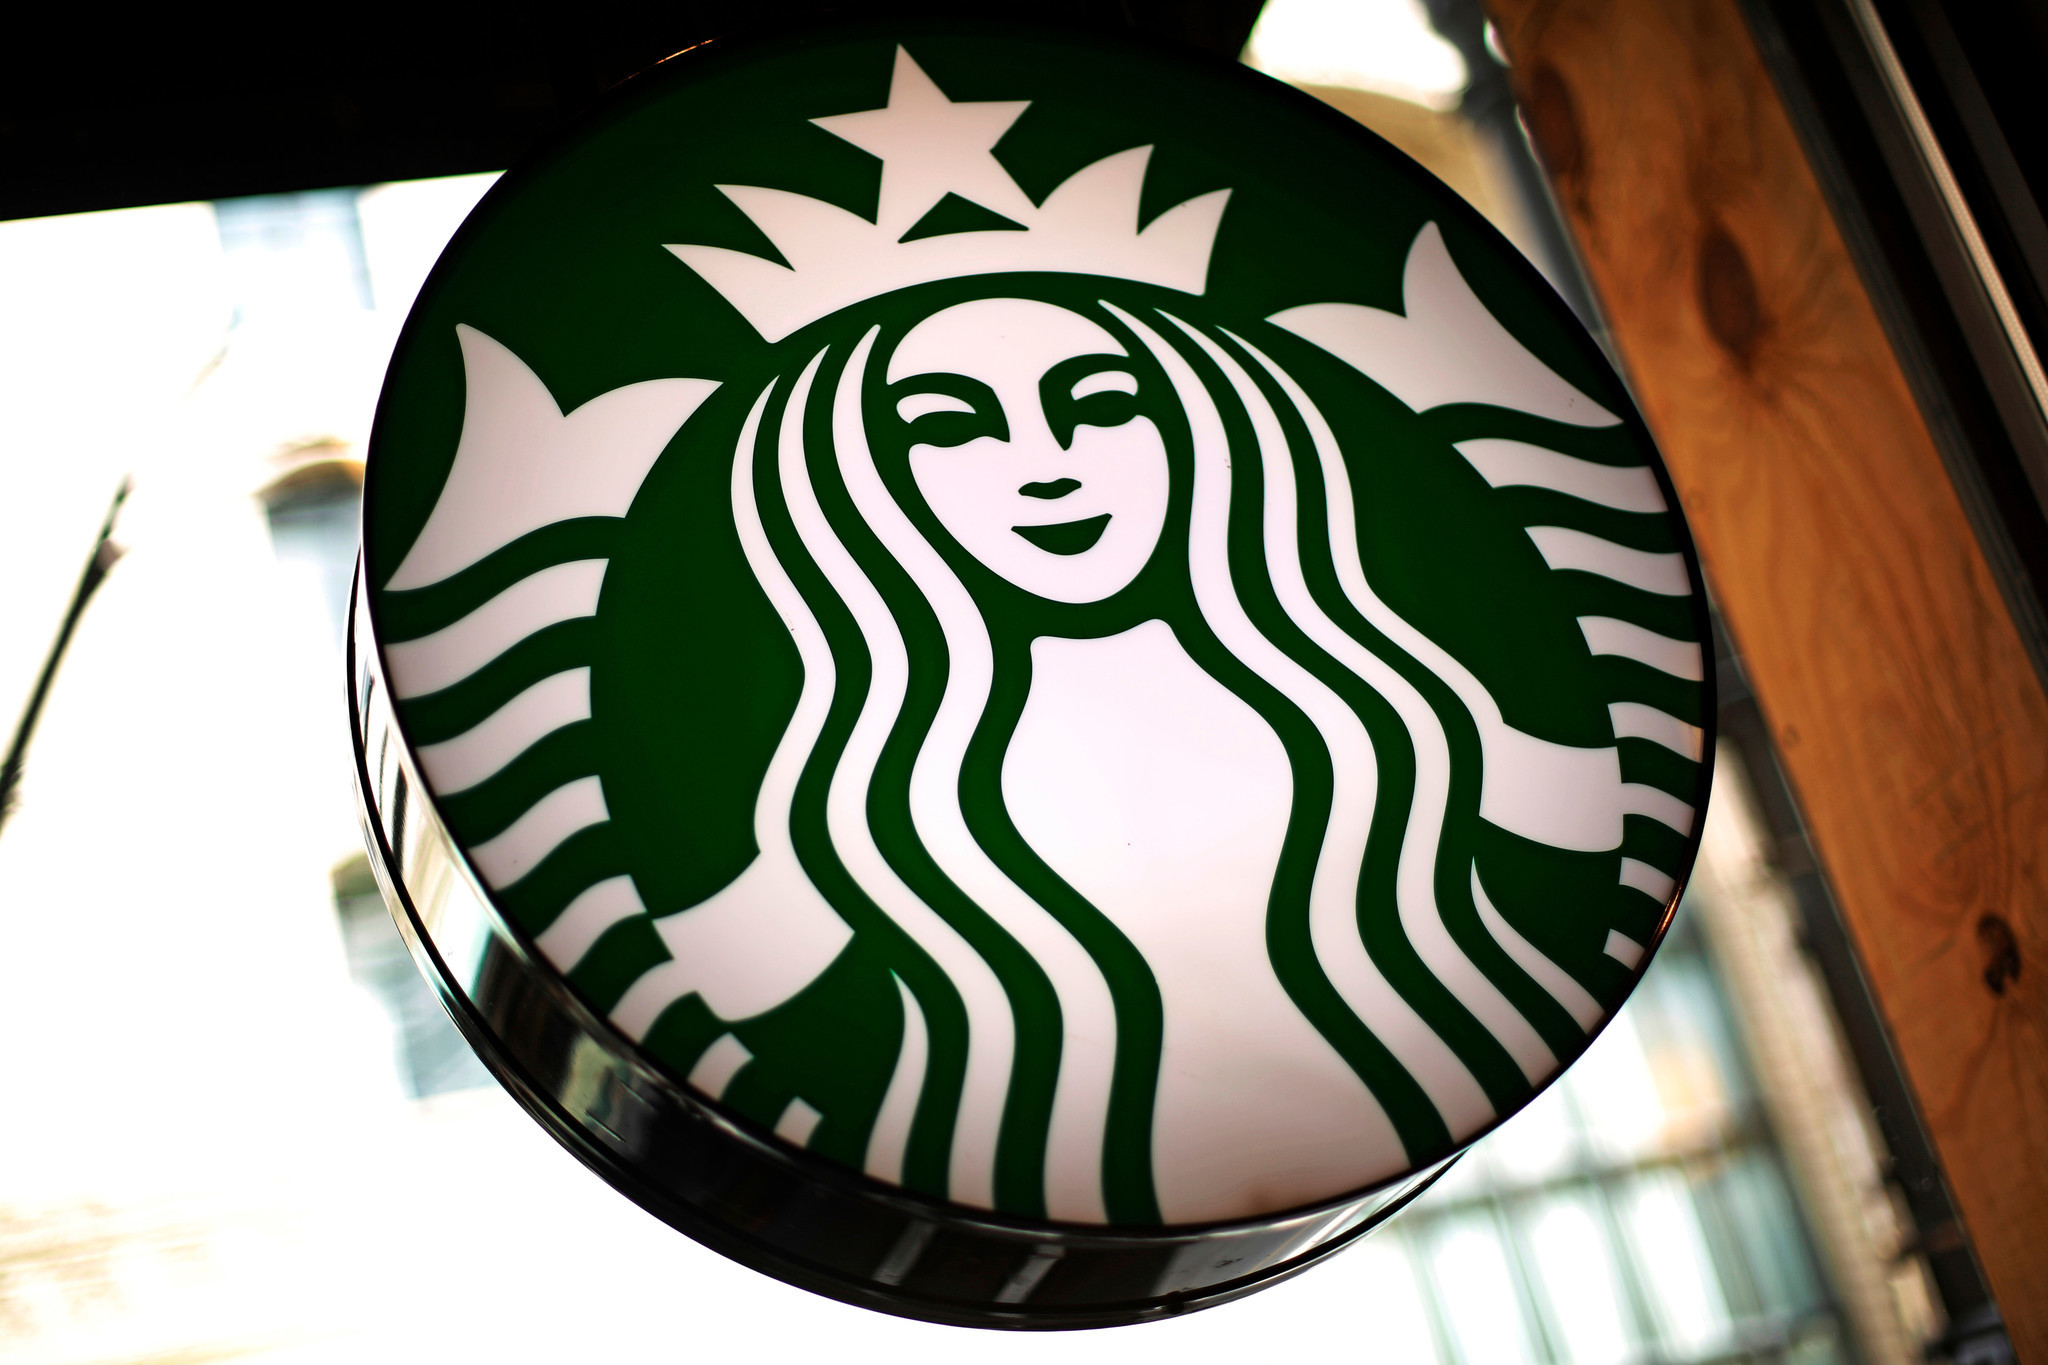 California deputies ignored and denied service at Starbucks in incident slammed by sheriff as part of 'anti police culture'